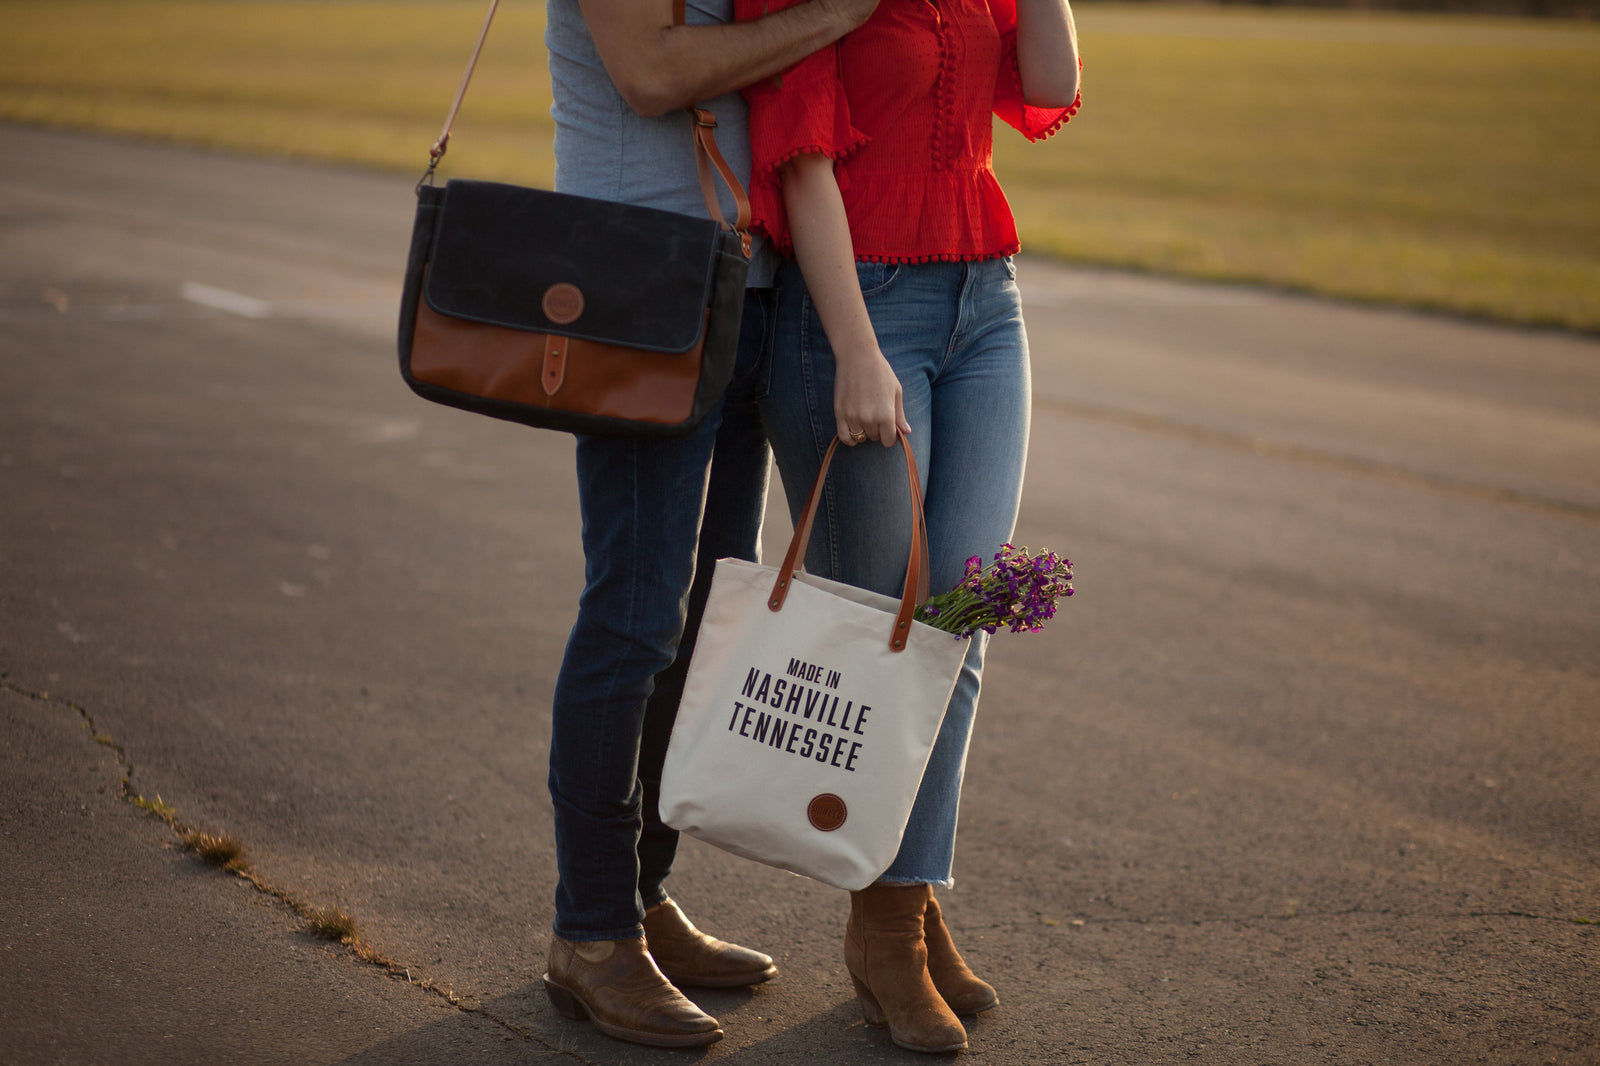 Hunker Bag Co:  Handmade leather and waxed canvas bags in Nashville, TN